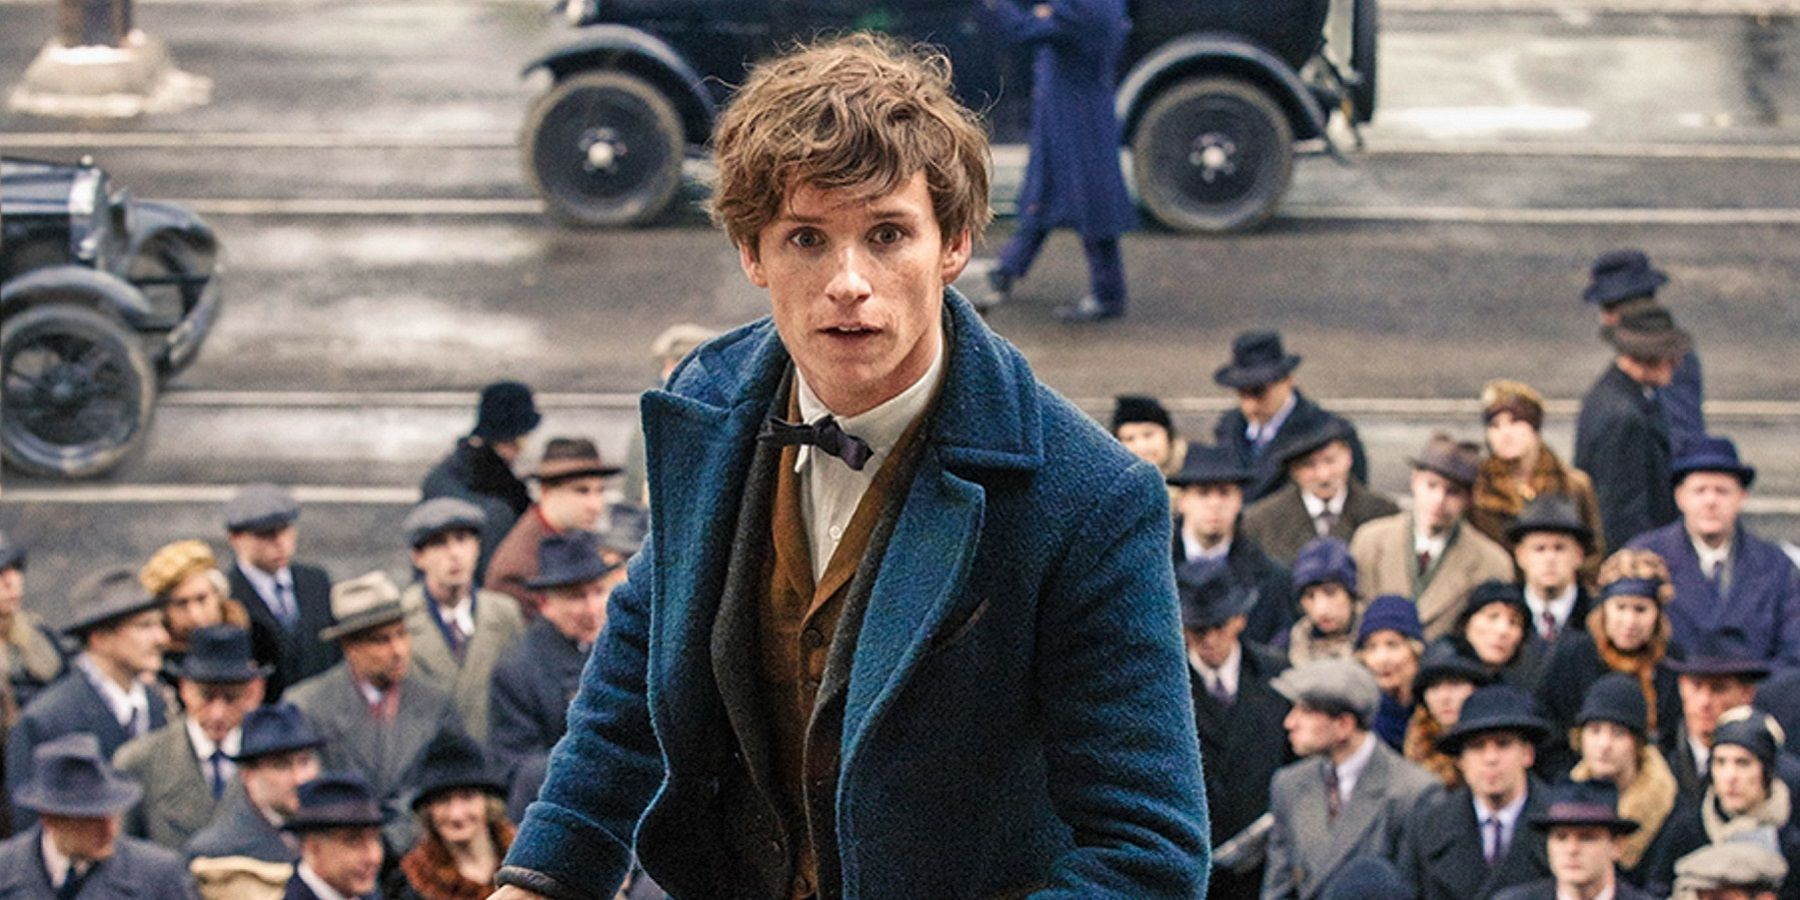 'Interesting things' to come in Fantastic Beasts films, fans assured